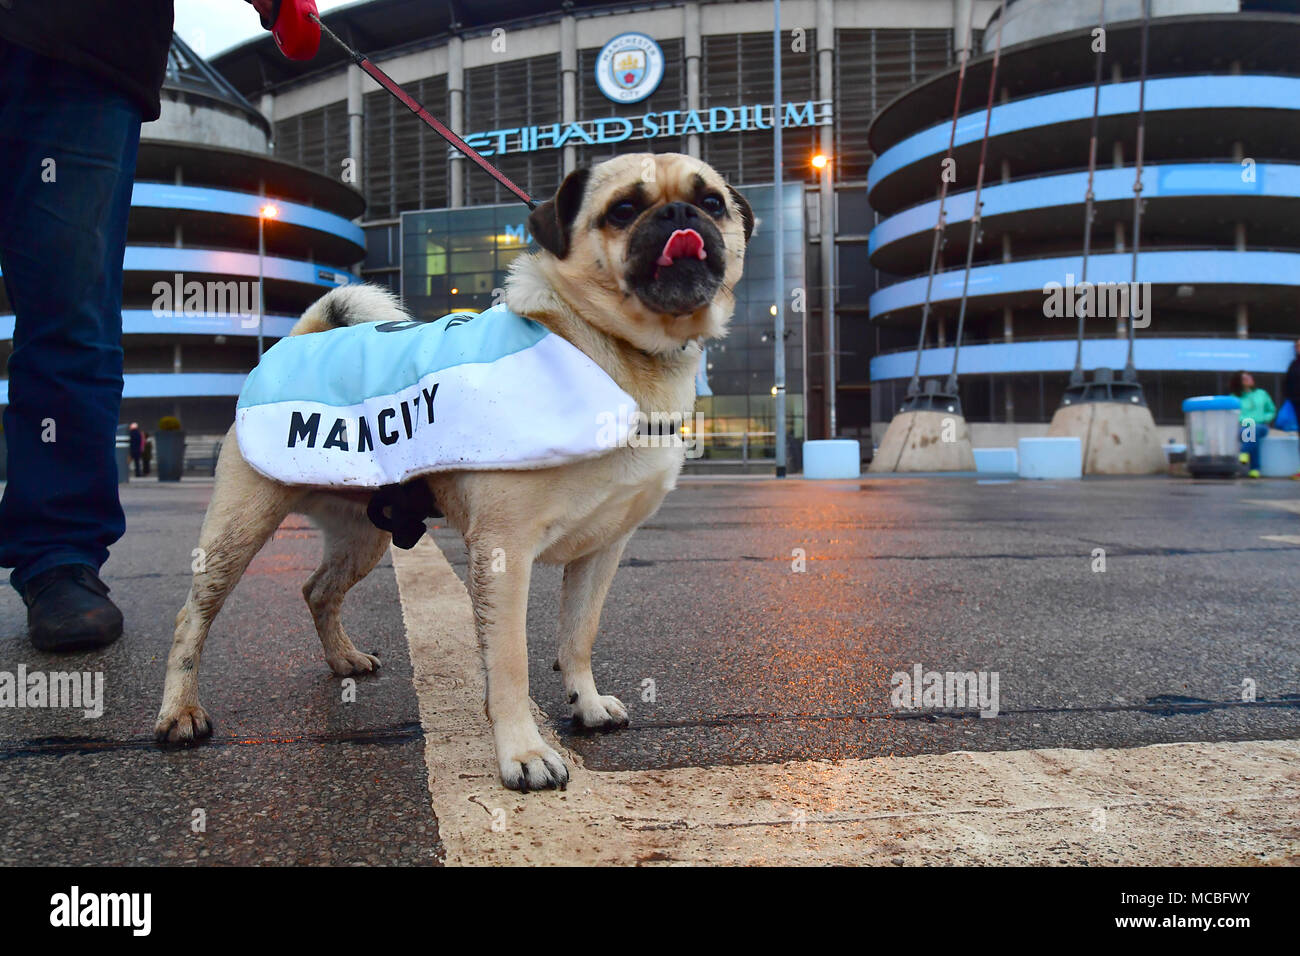 A Dog Called Balotelli Celebrates As Manchester City Win The